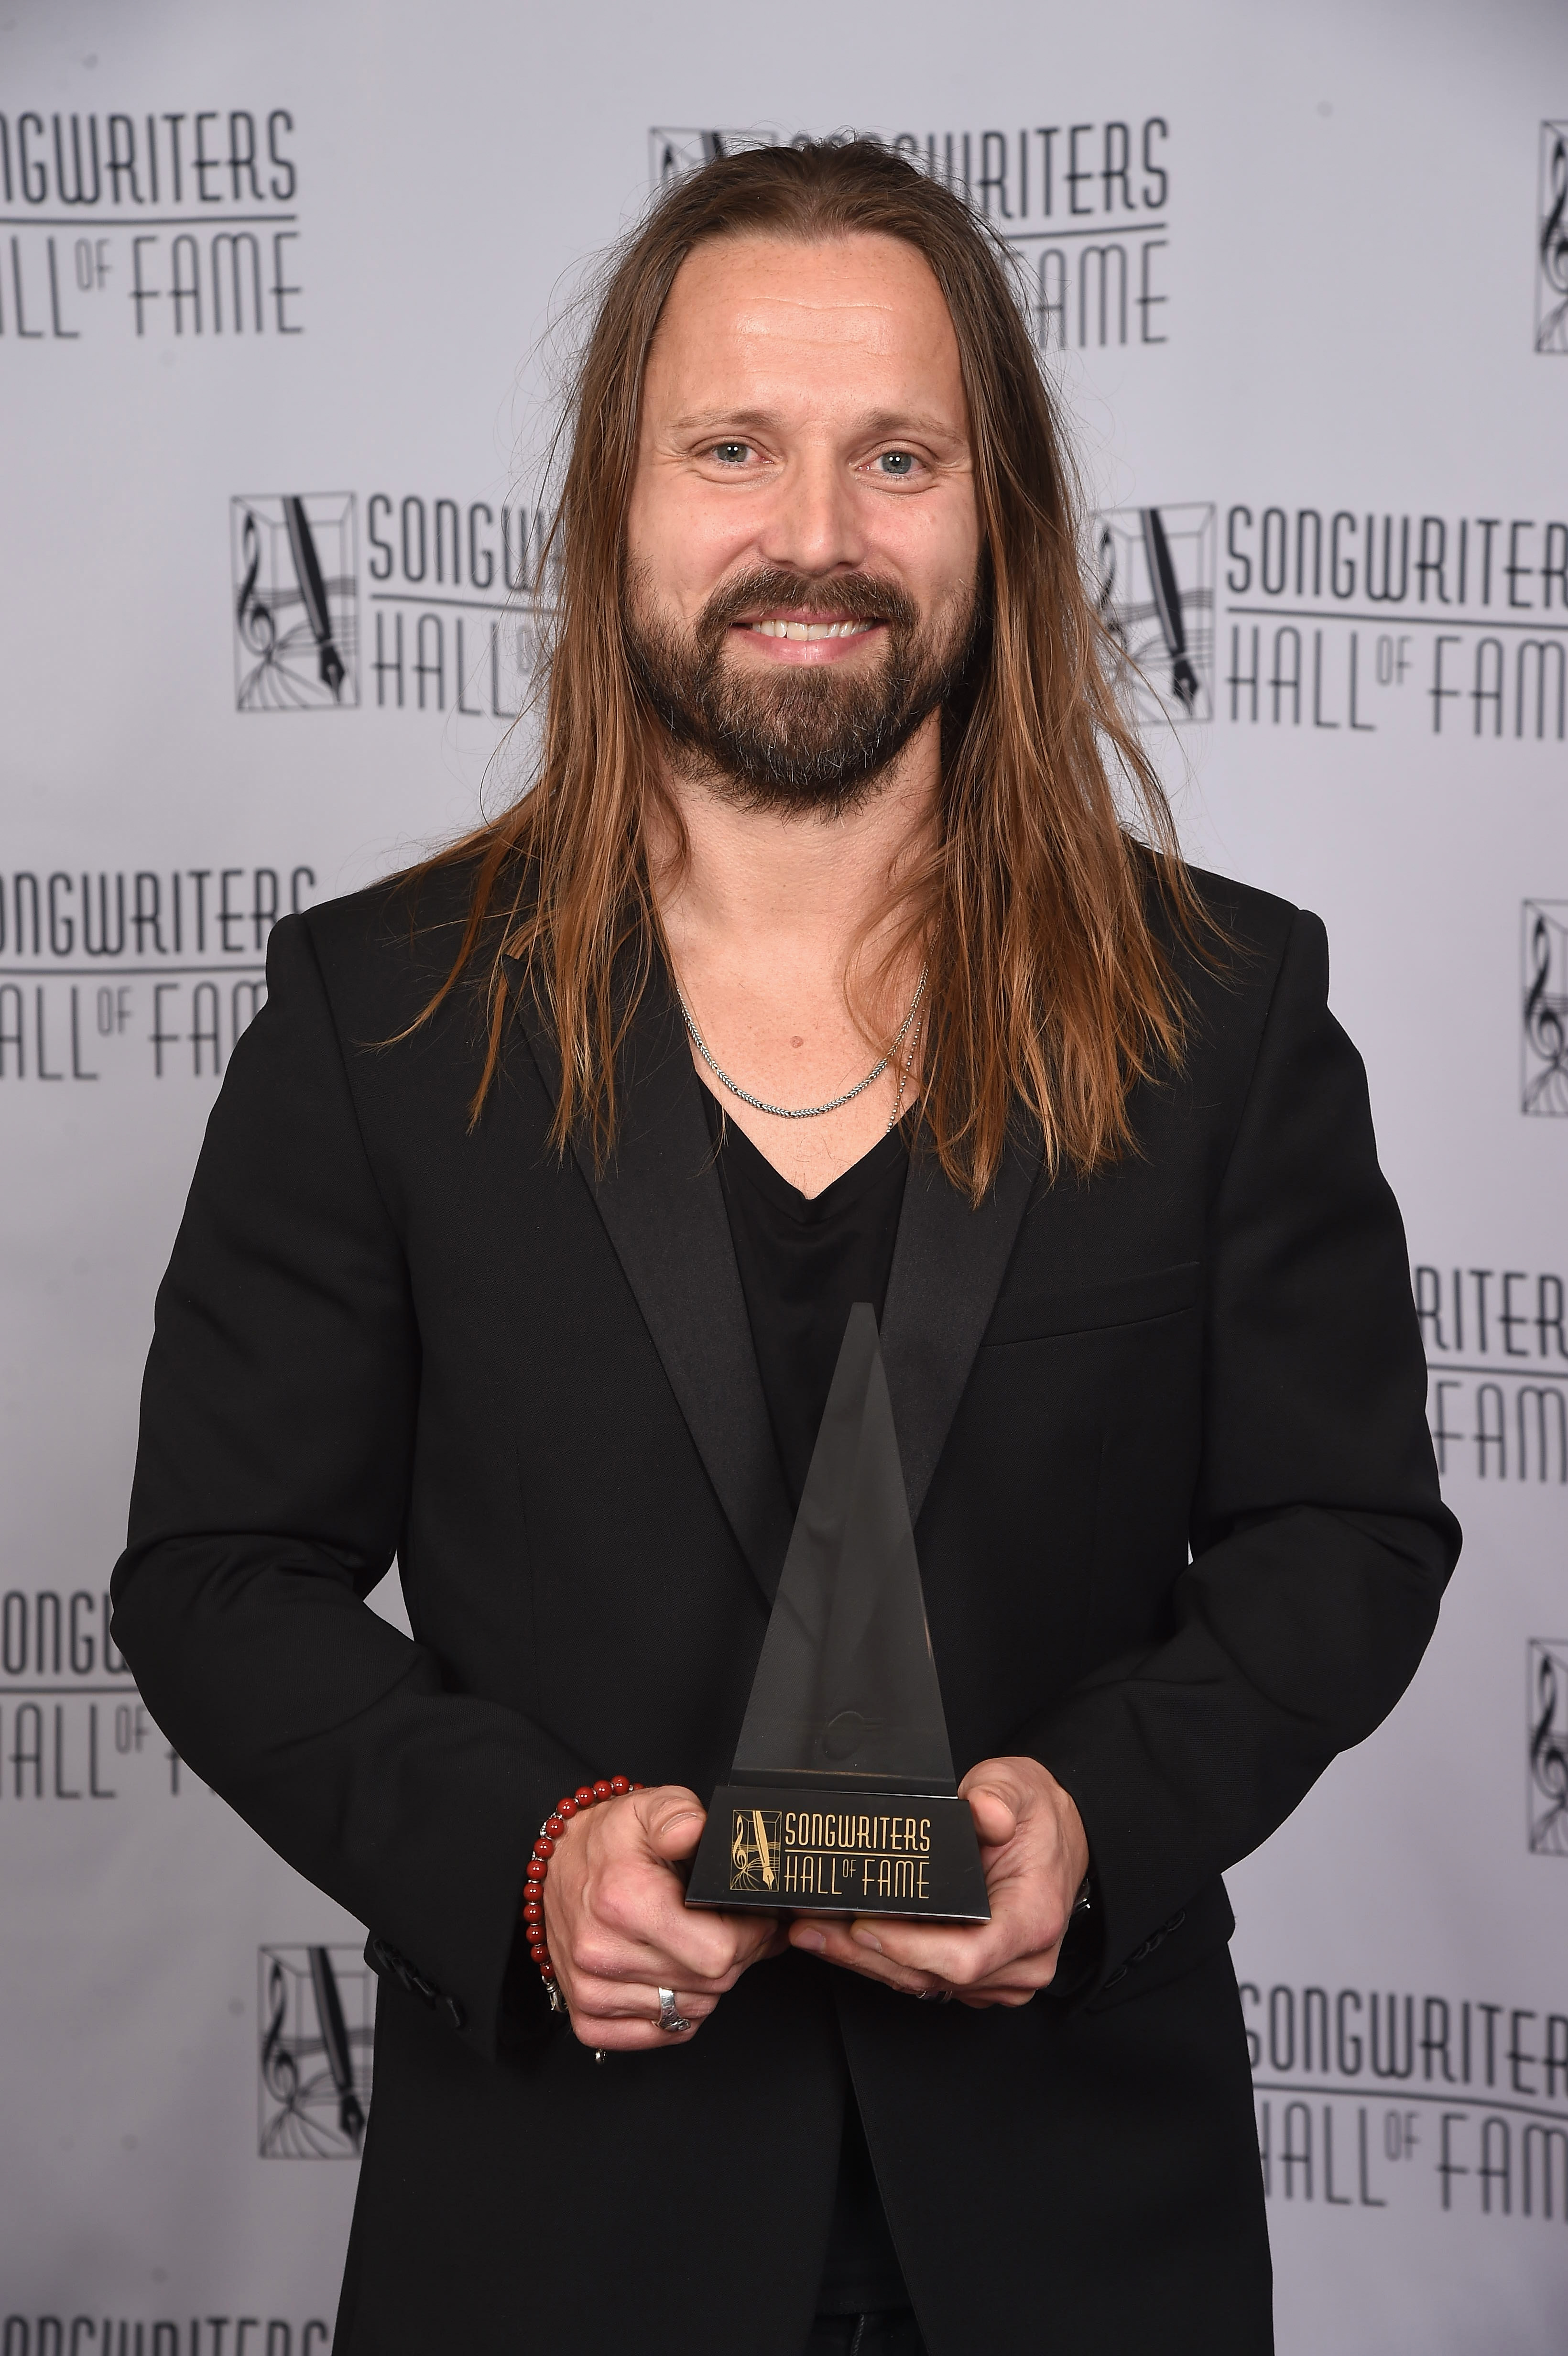 NEW YORK, NY - JUNE 15:  2017 Inductee Max Martin poses with his award backstage at the Songwriters Hall Of Fame 48th Annual Induction and Awards at New York Marriott Marquis Hotel on June 15, 2017 in New York City.  (Photo by Gary Gershoff/Getty Images for Songwriters Hall Of Fame) *** Local Caption *** Max Martin